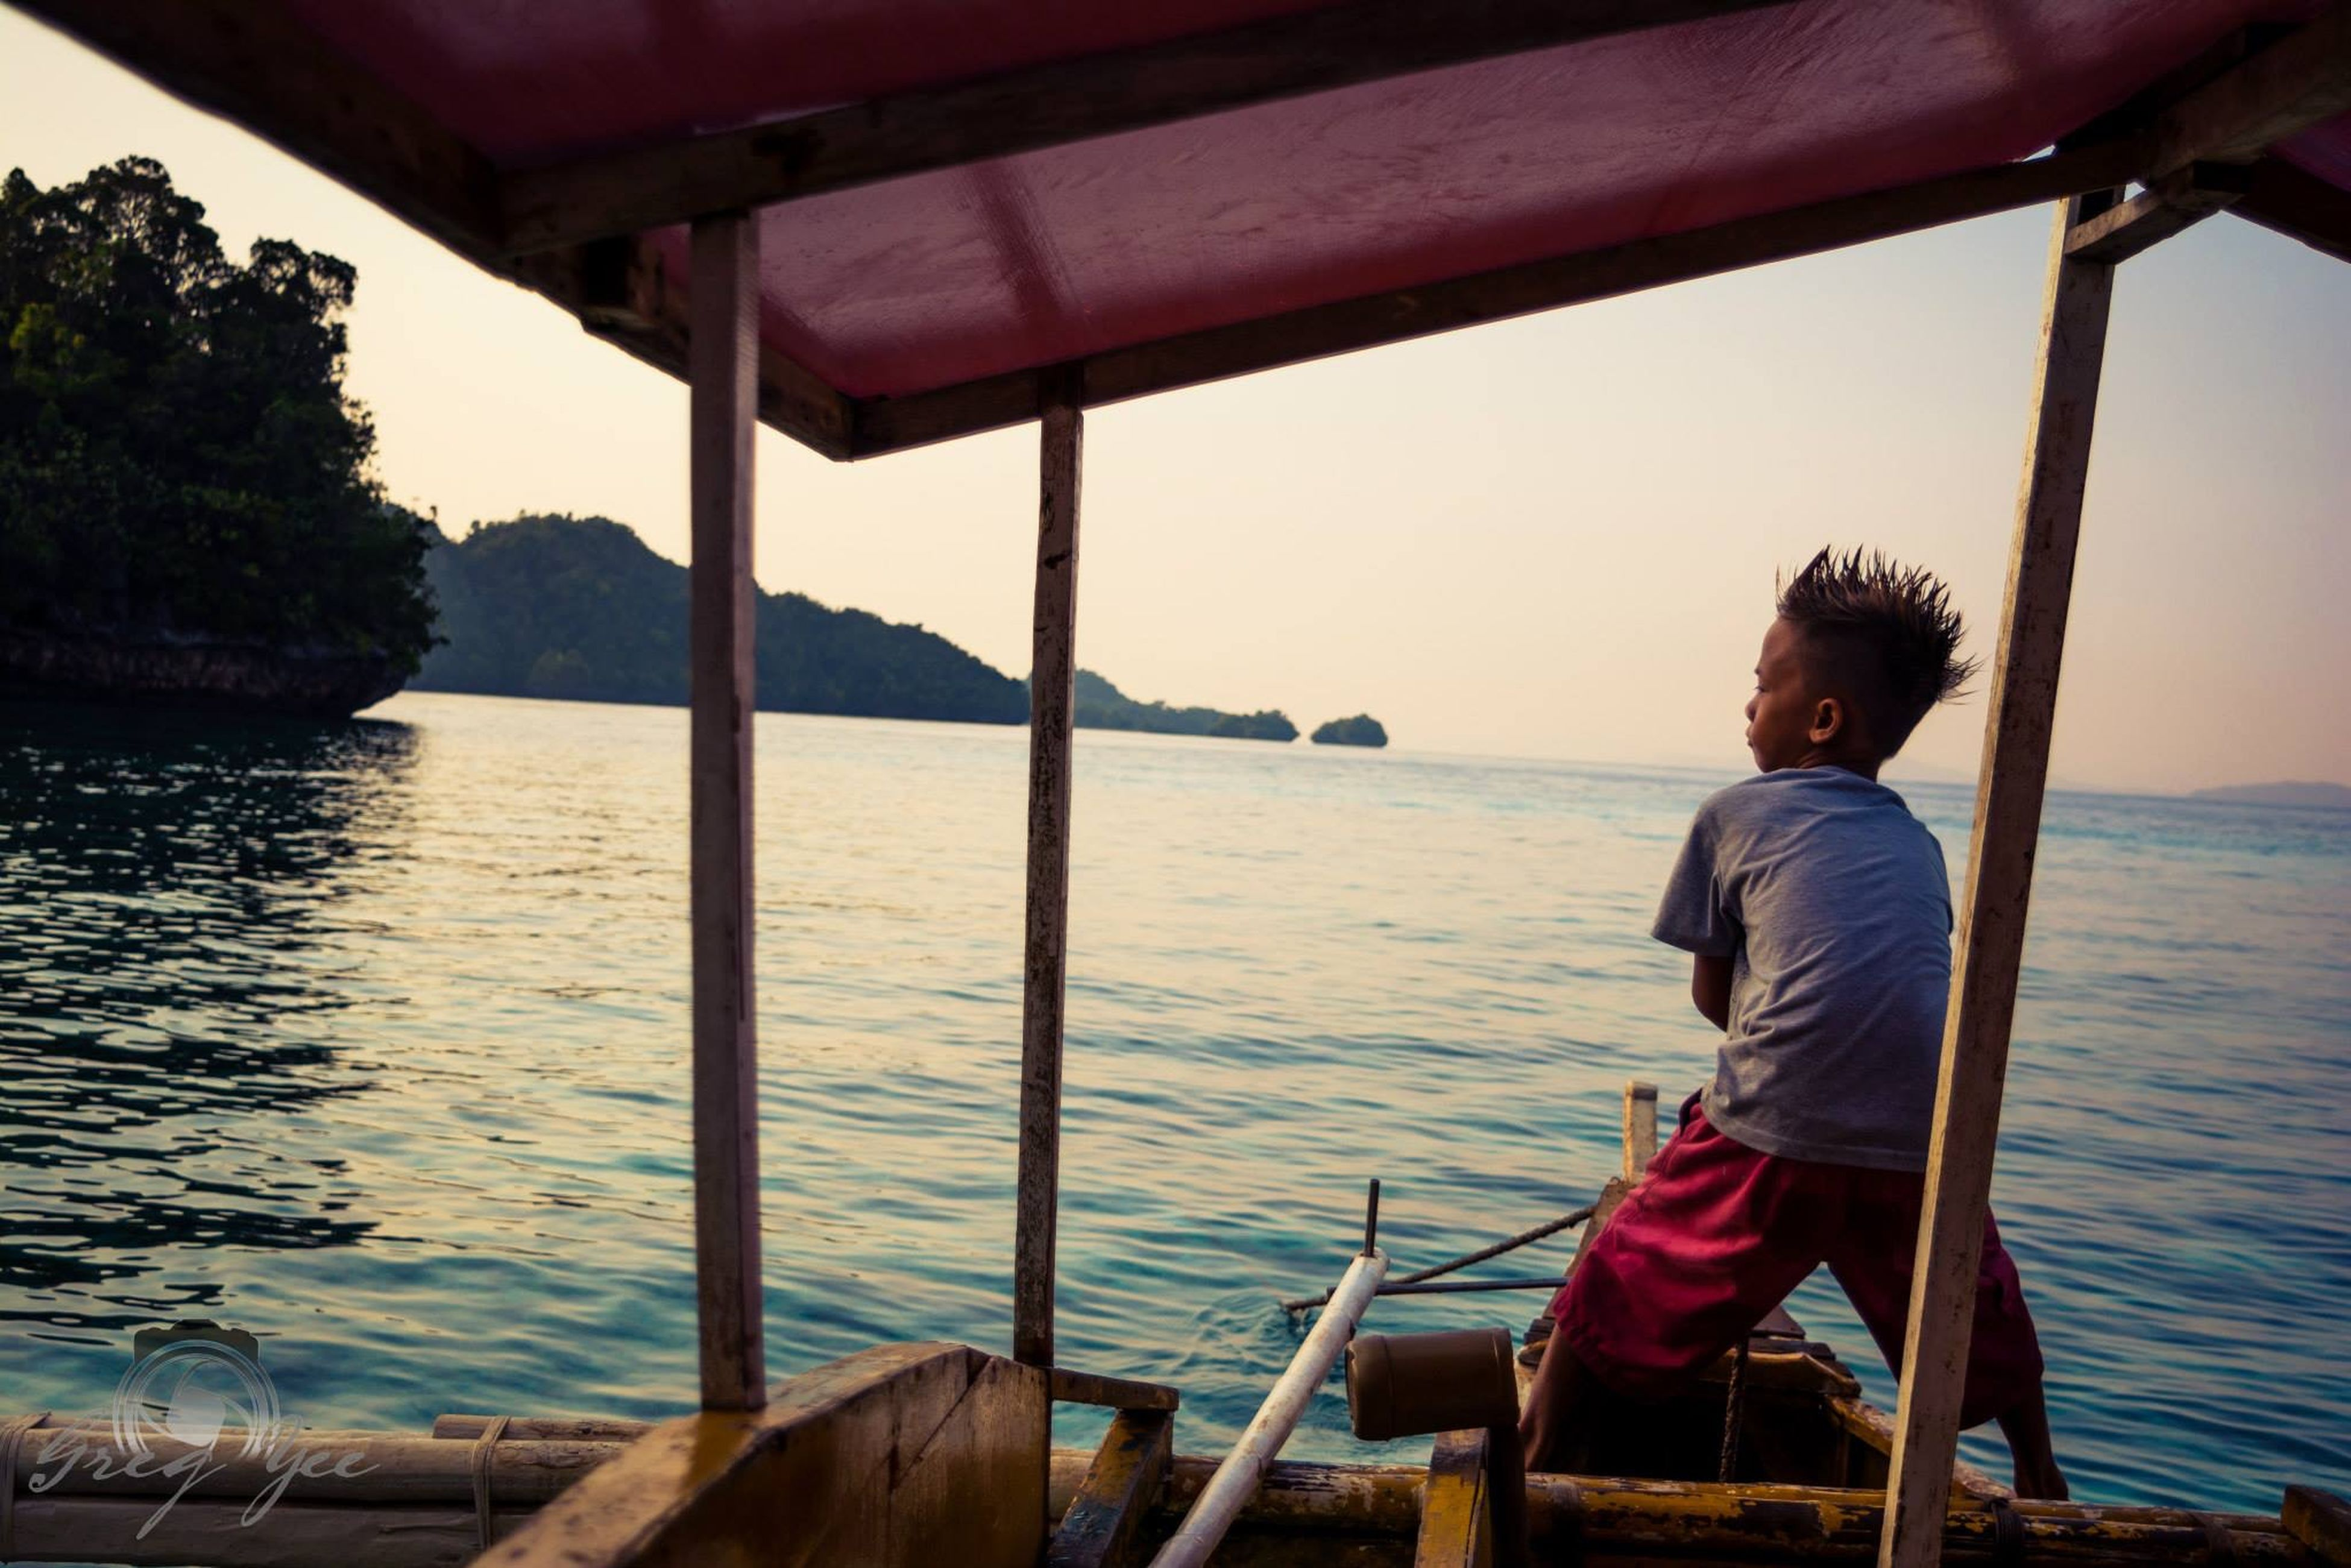 water, rear view, sea, lifestyles, leisure activity, casual clothing, nature, sitting, scenics, tree, beauty in nature, standing, tranquility, sky, nautical vessel, tranquil scene, three quarter length, vacations